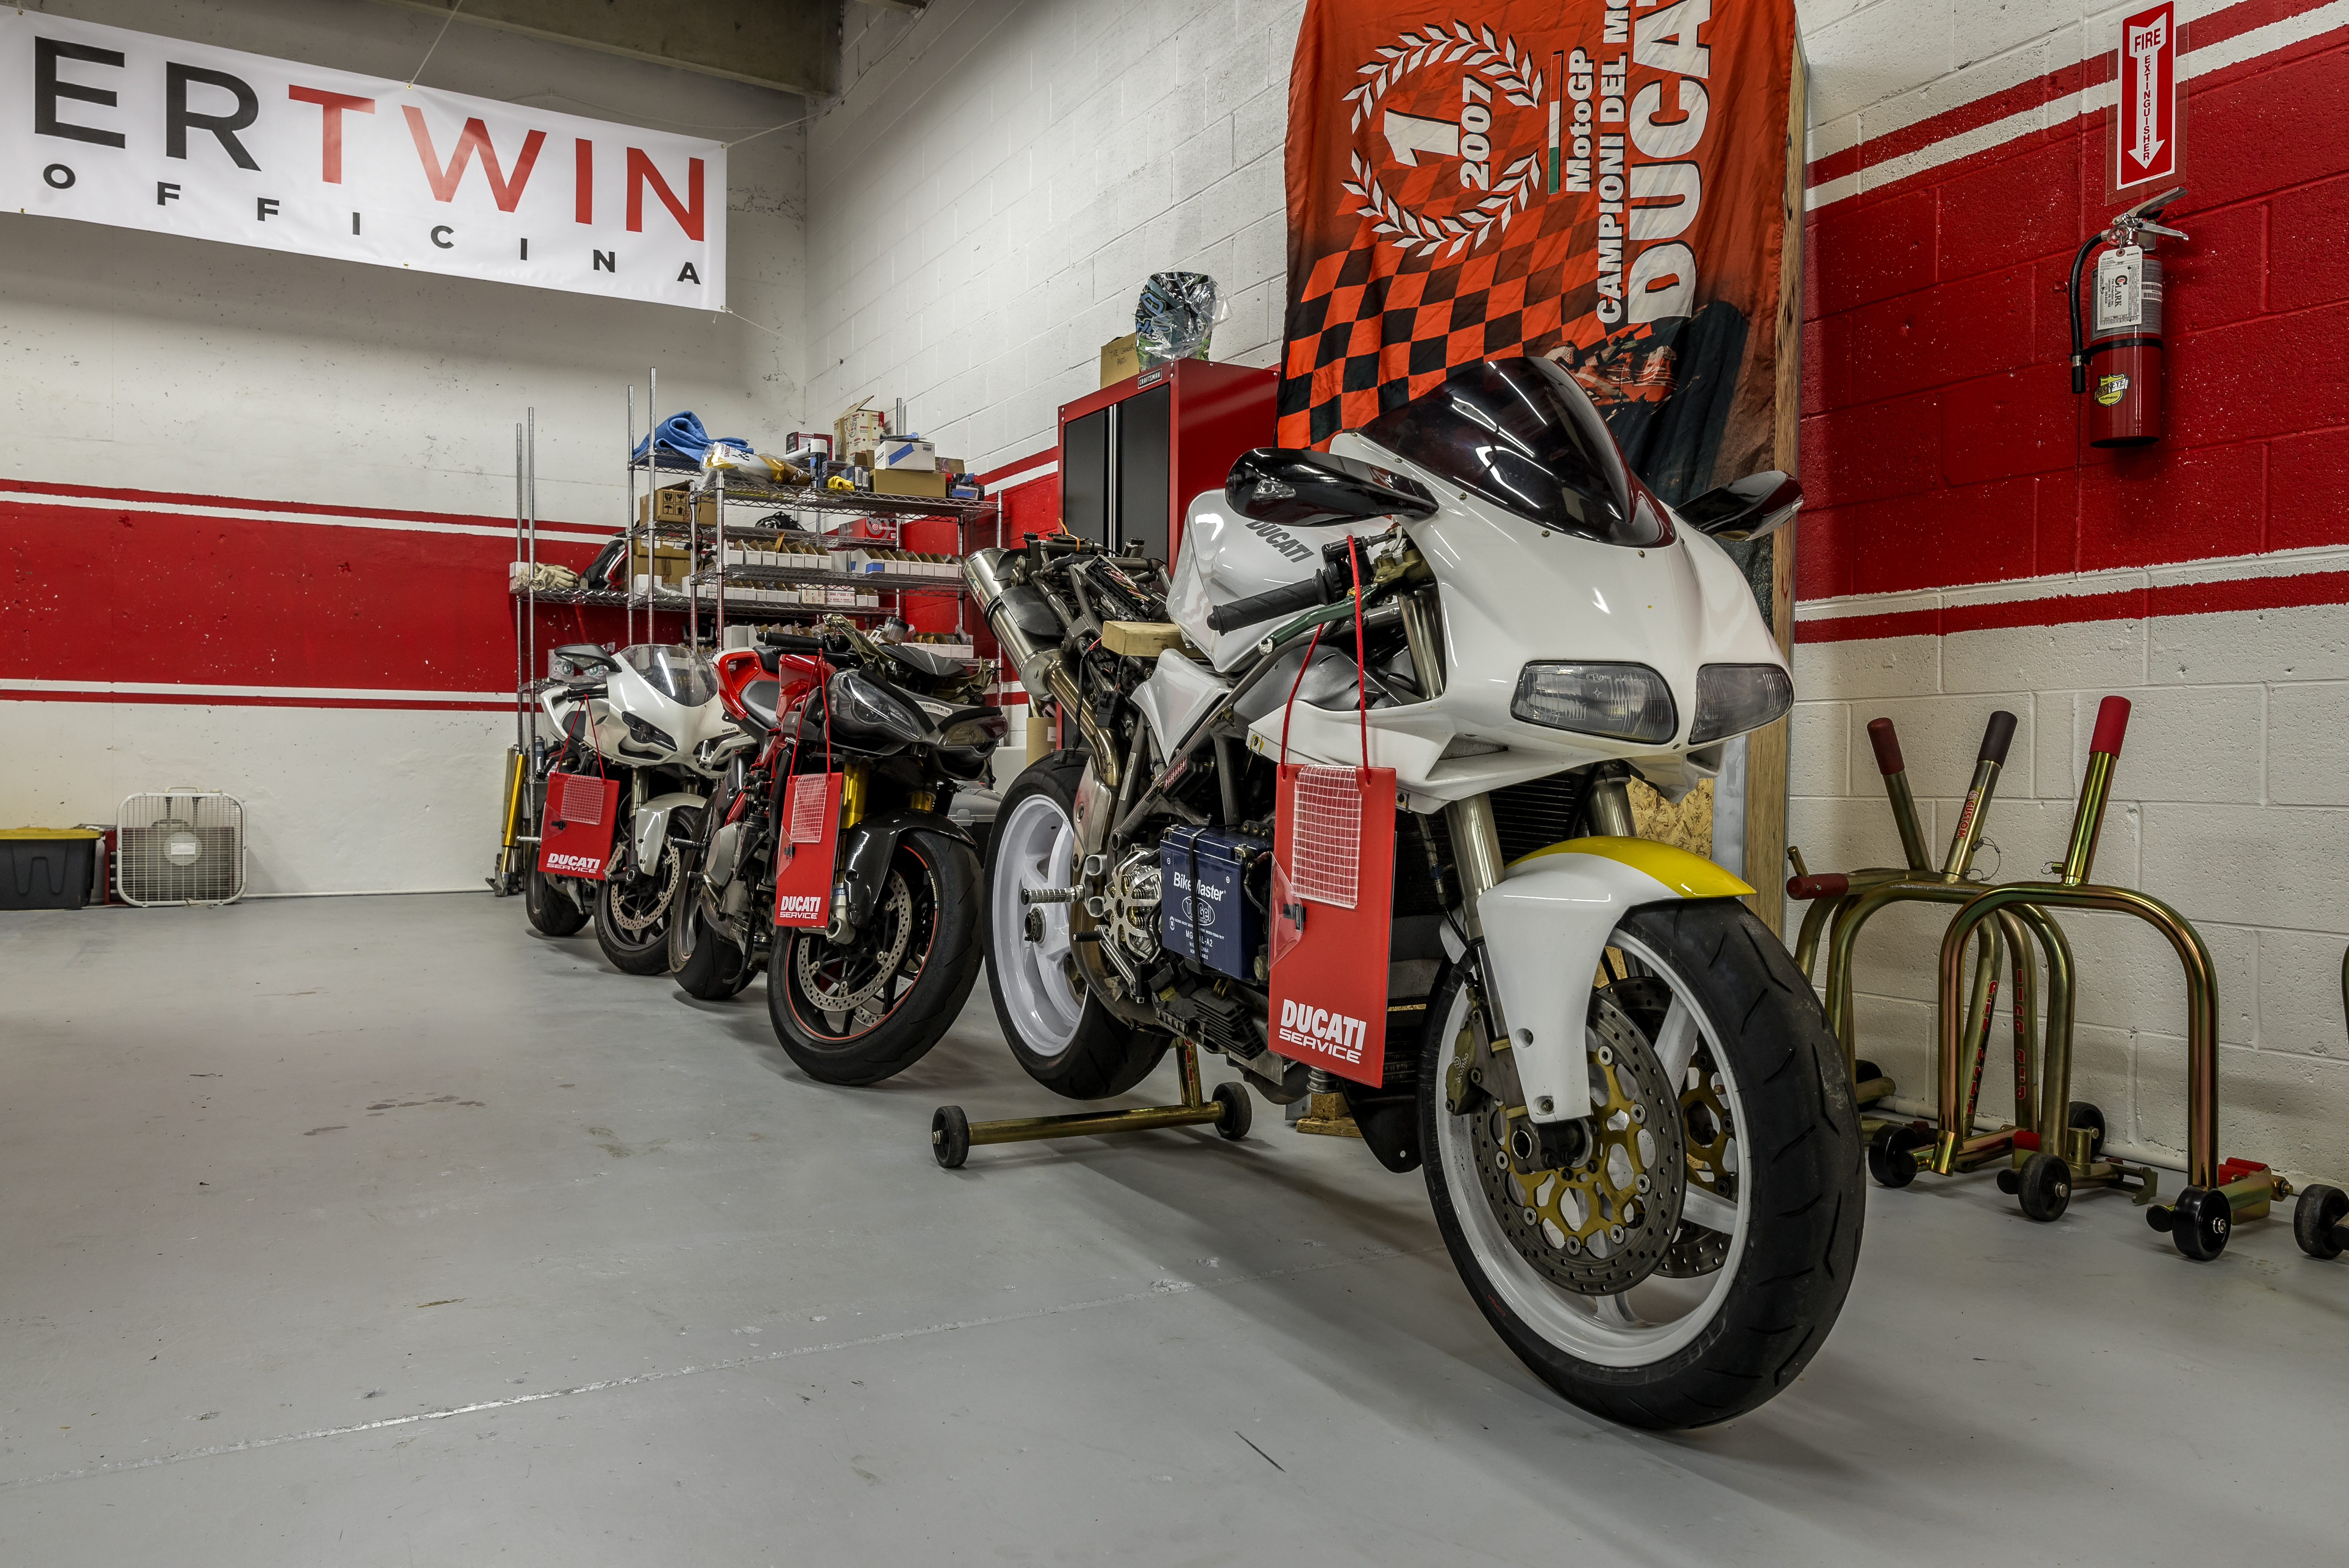 Fastertwin Moto Officina